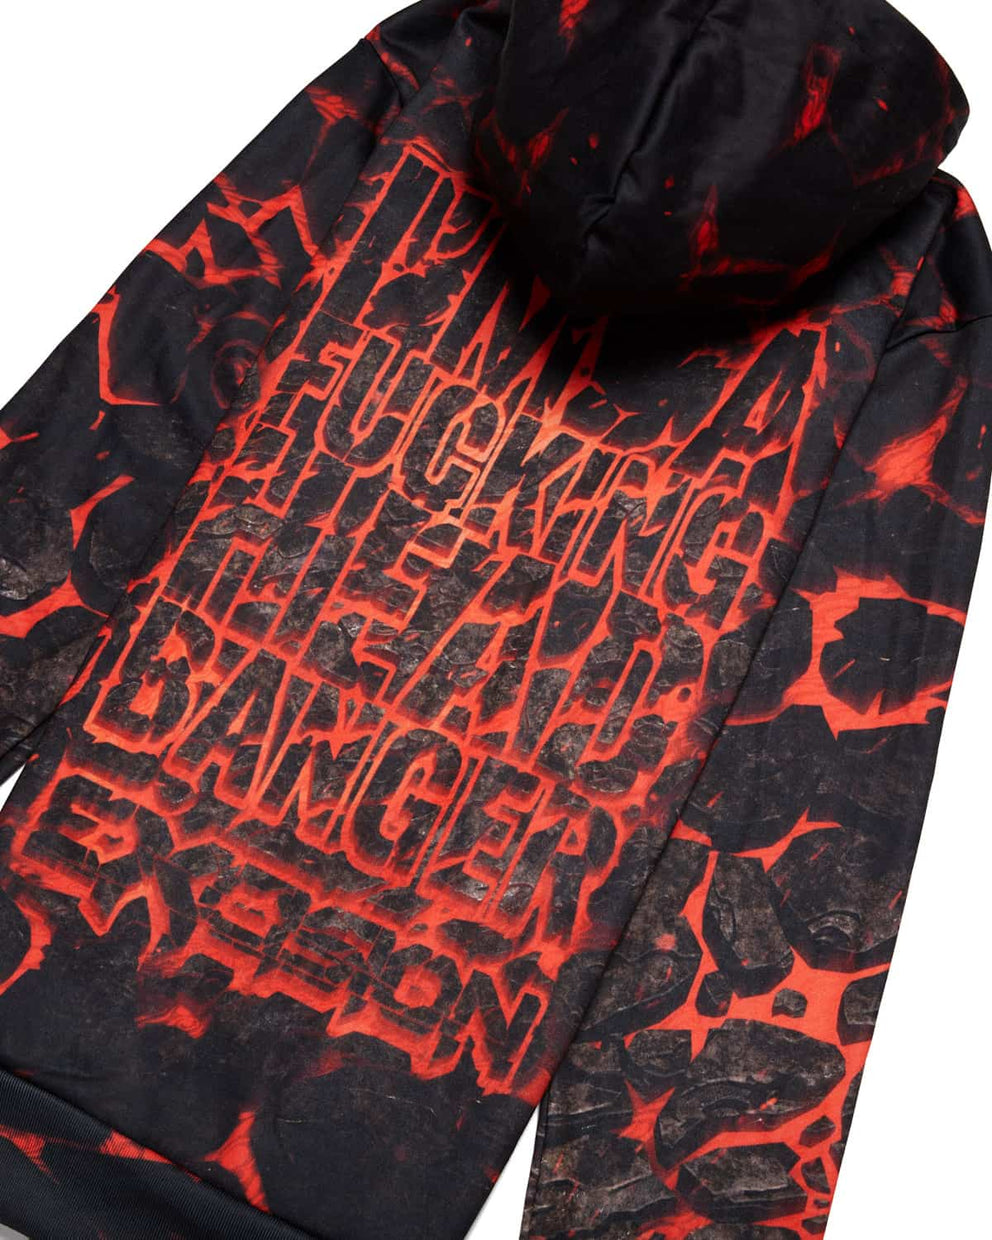 Excision' Headbanger' Hoodie - Lost Lands Edition - Red